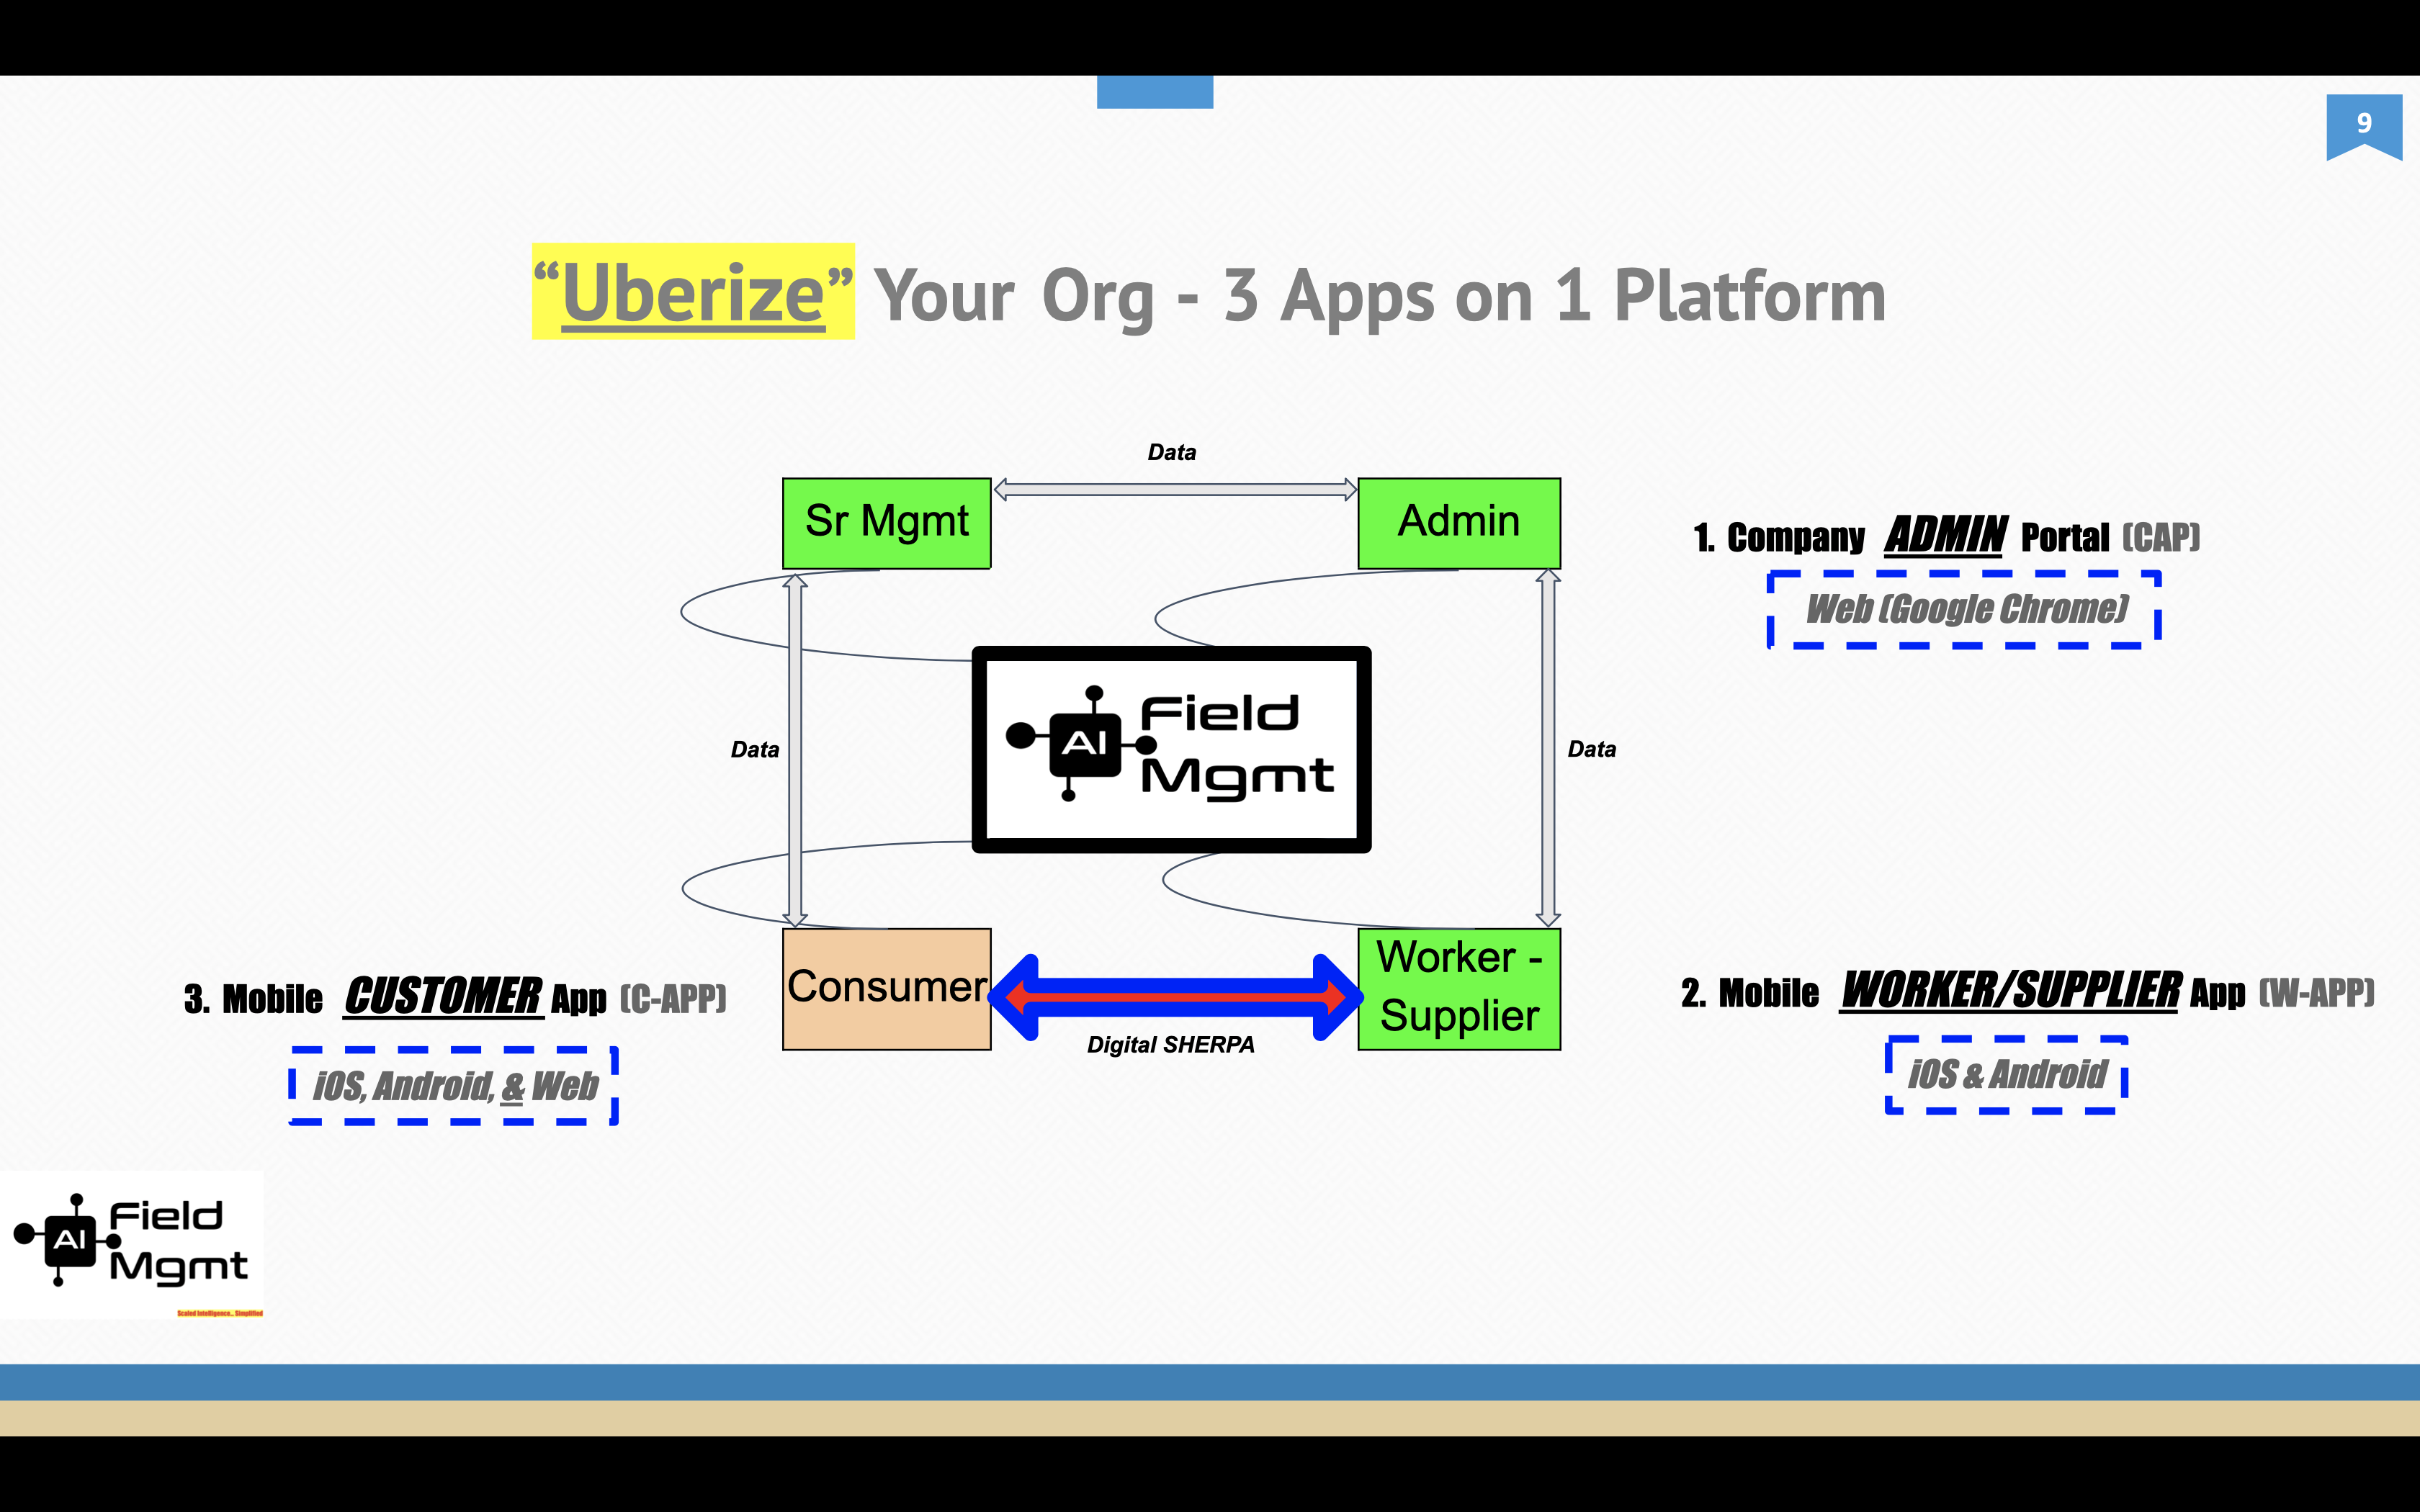 """Uberize"" Your Process"